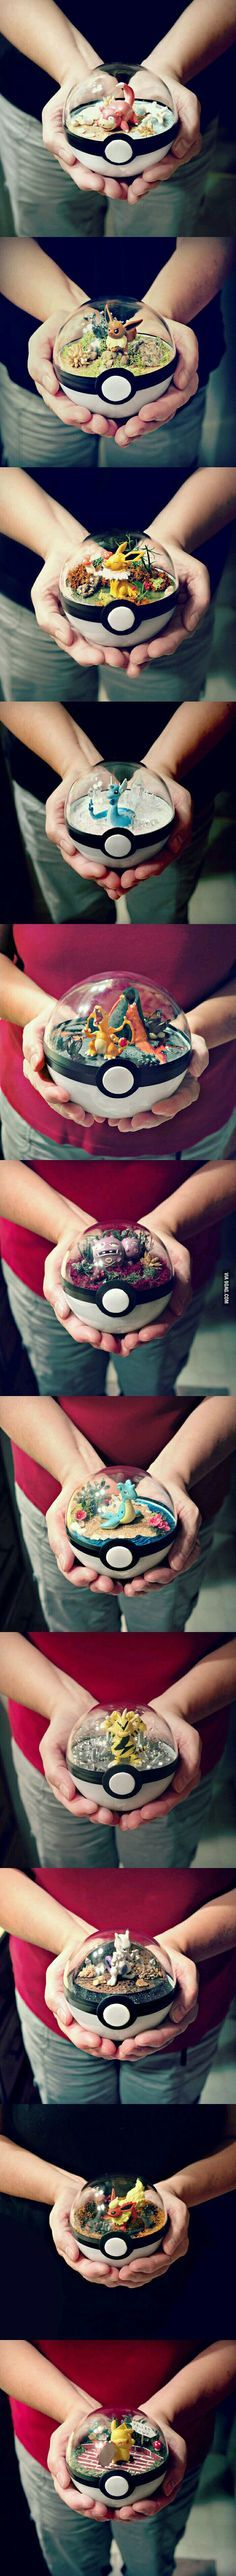 Pokemon Terrarium. You know you want it